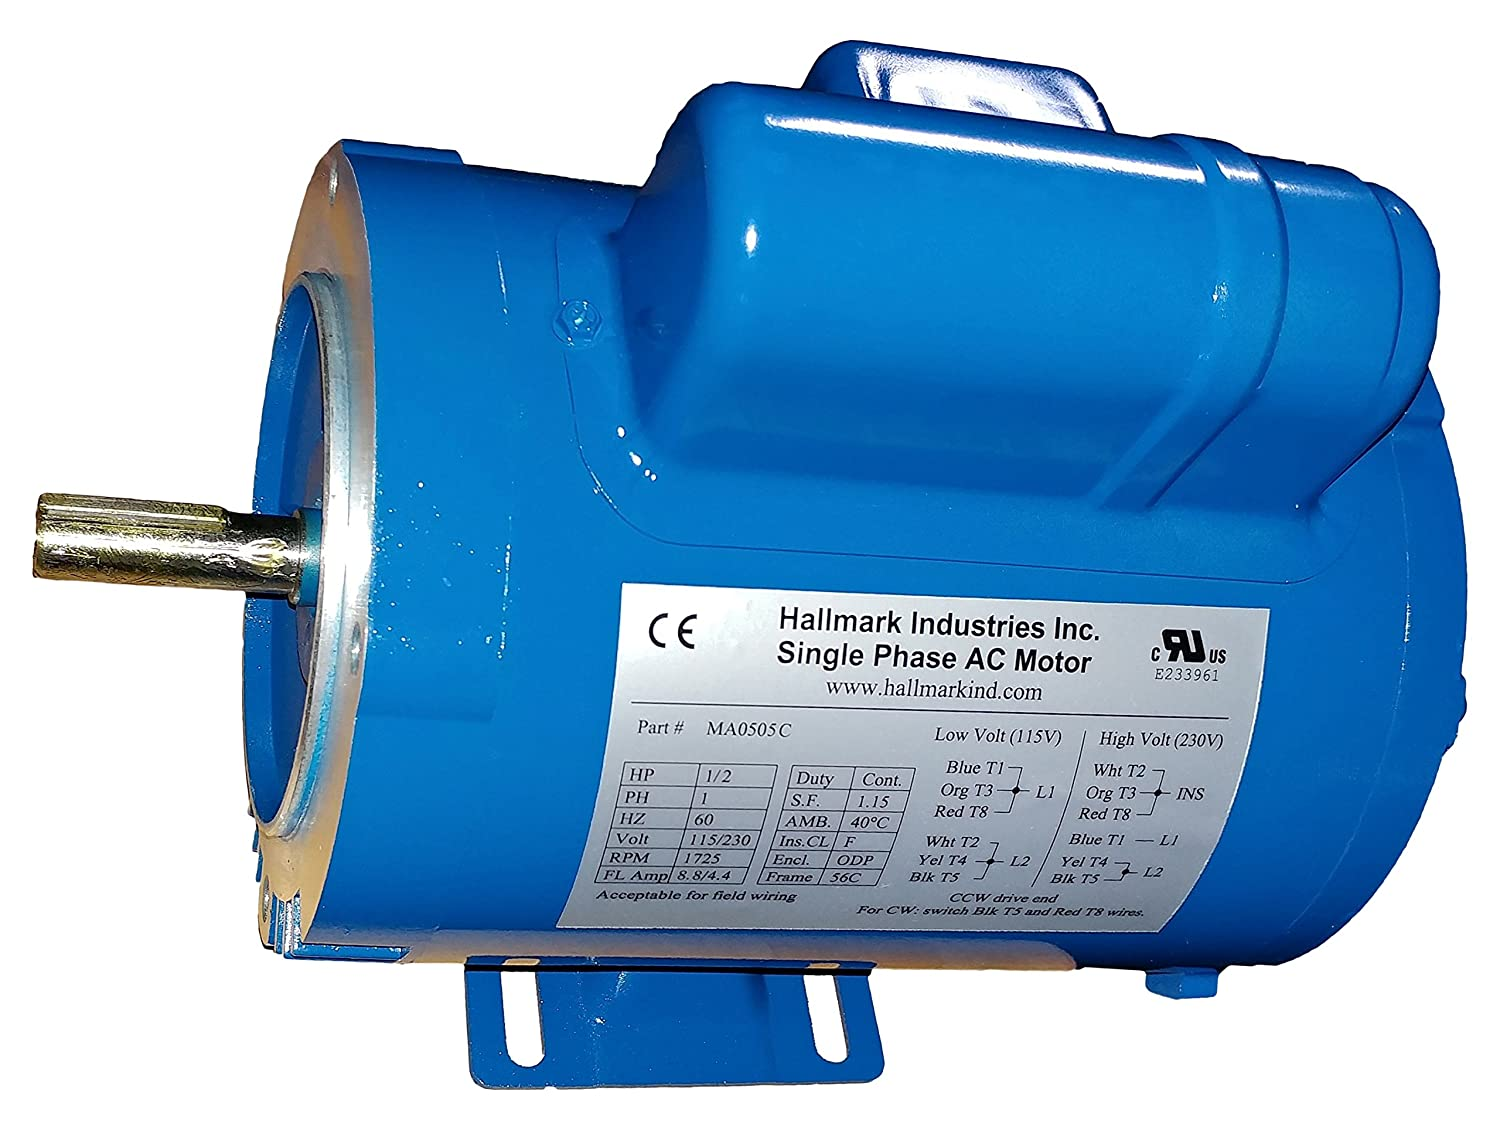 Hallmark Industries MA0505C AC Motor, 1/2 hp, 1725 RPM, 1PH/60 hz, 115/208-230V AC, 56C/ODP, Cap Start, with Foot, SF 1.15, Steel (Pack of 1)